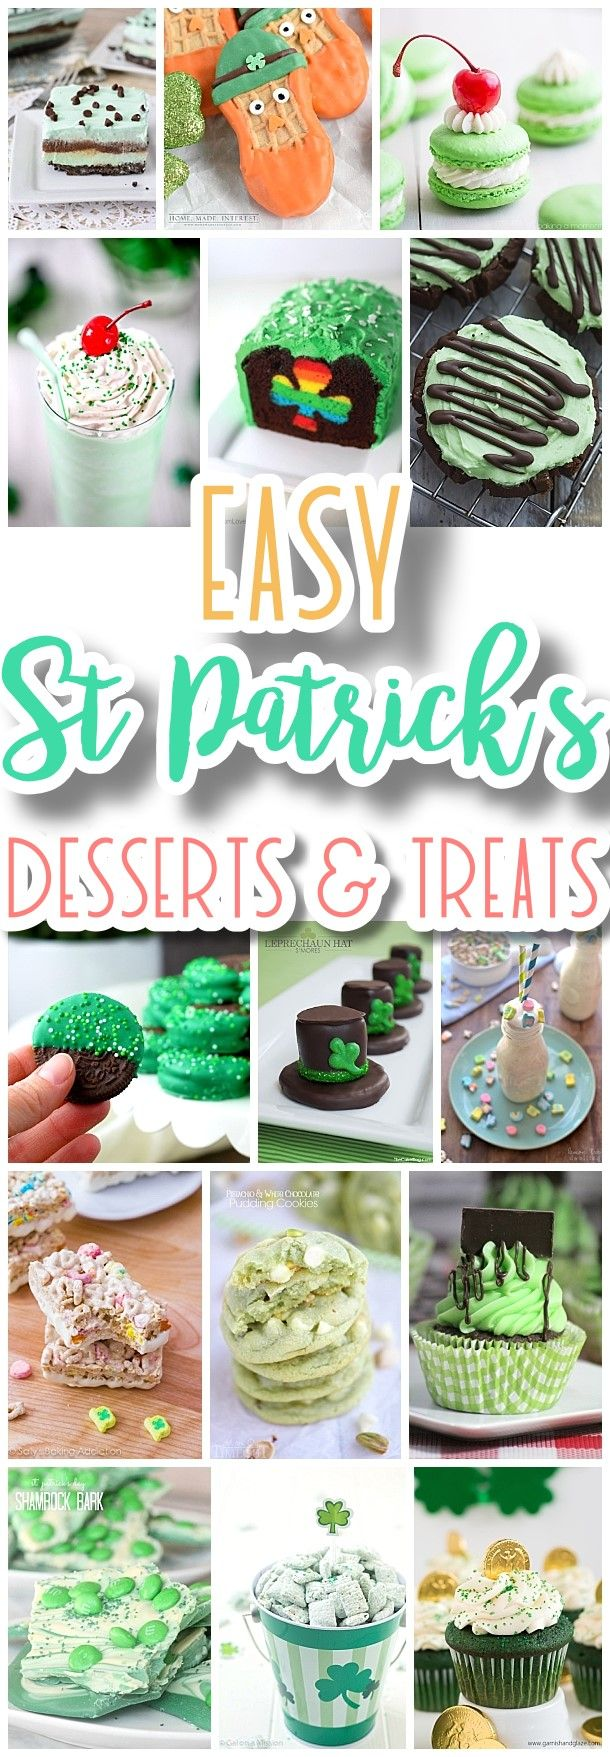 The BEST St. Patrick's Day Desserts and Treats Recipes - Lucky Green Sweets for your Spring Holiday Party - Dreaming in DIY #easystpatricksdaydesserts #stpatricksday #stpatricksdayparty #stpatricksdaypartyfood #lucky #luckygreen #luckytreats #shamrocks #clovers #rainbowtreats #leprechantreats